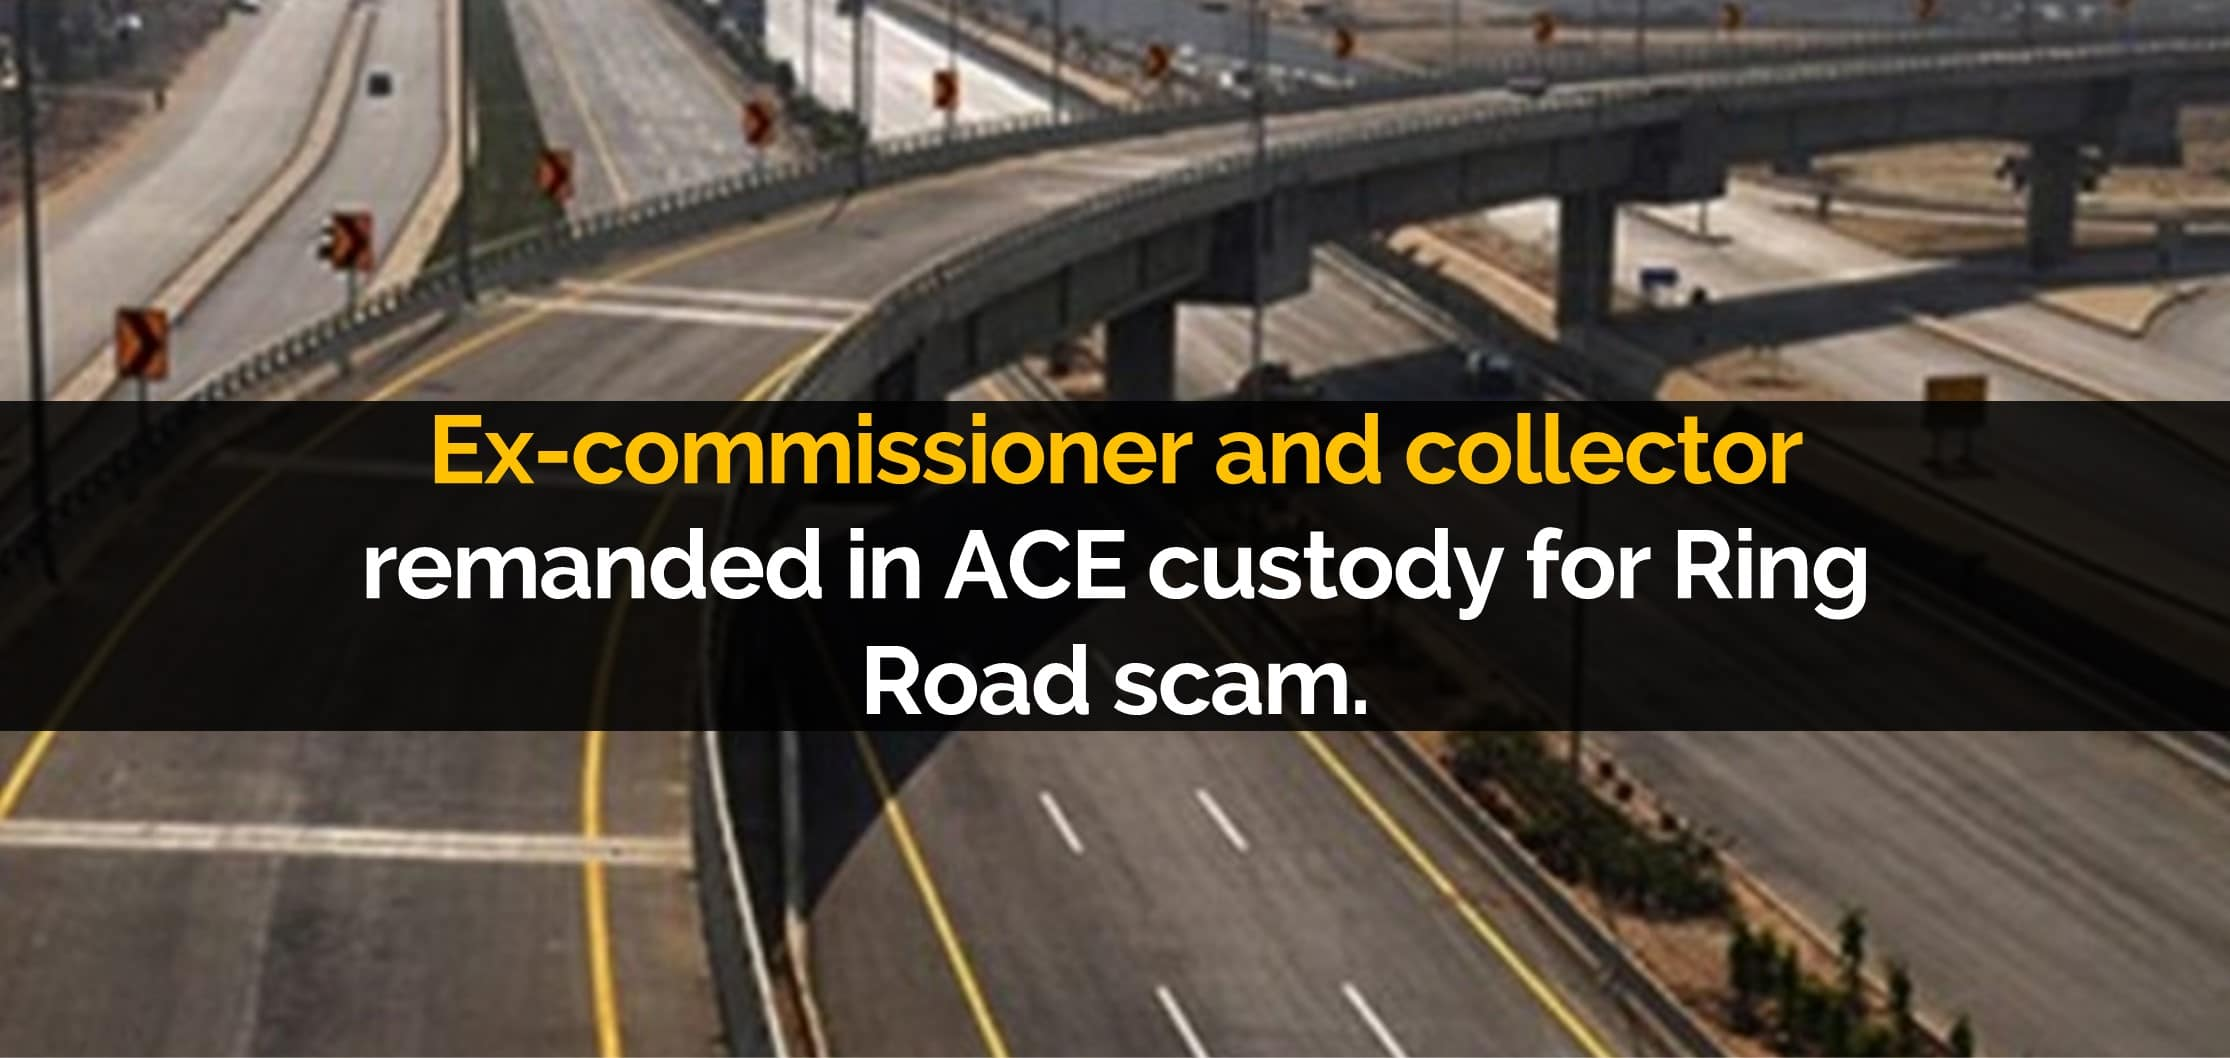 Ex-commissioner and collector remanded in ACE custody for Ring Road scam